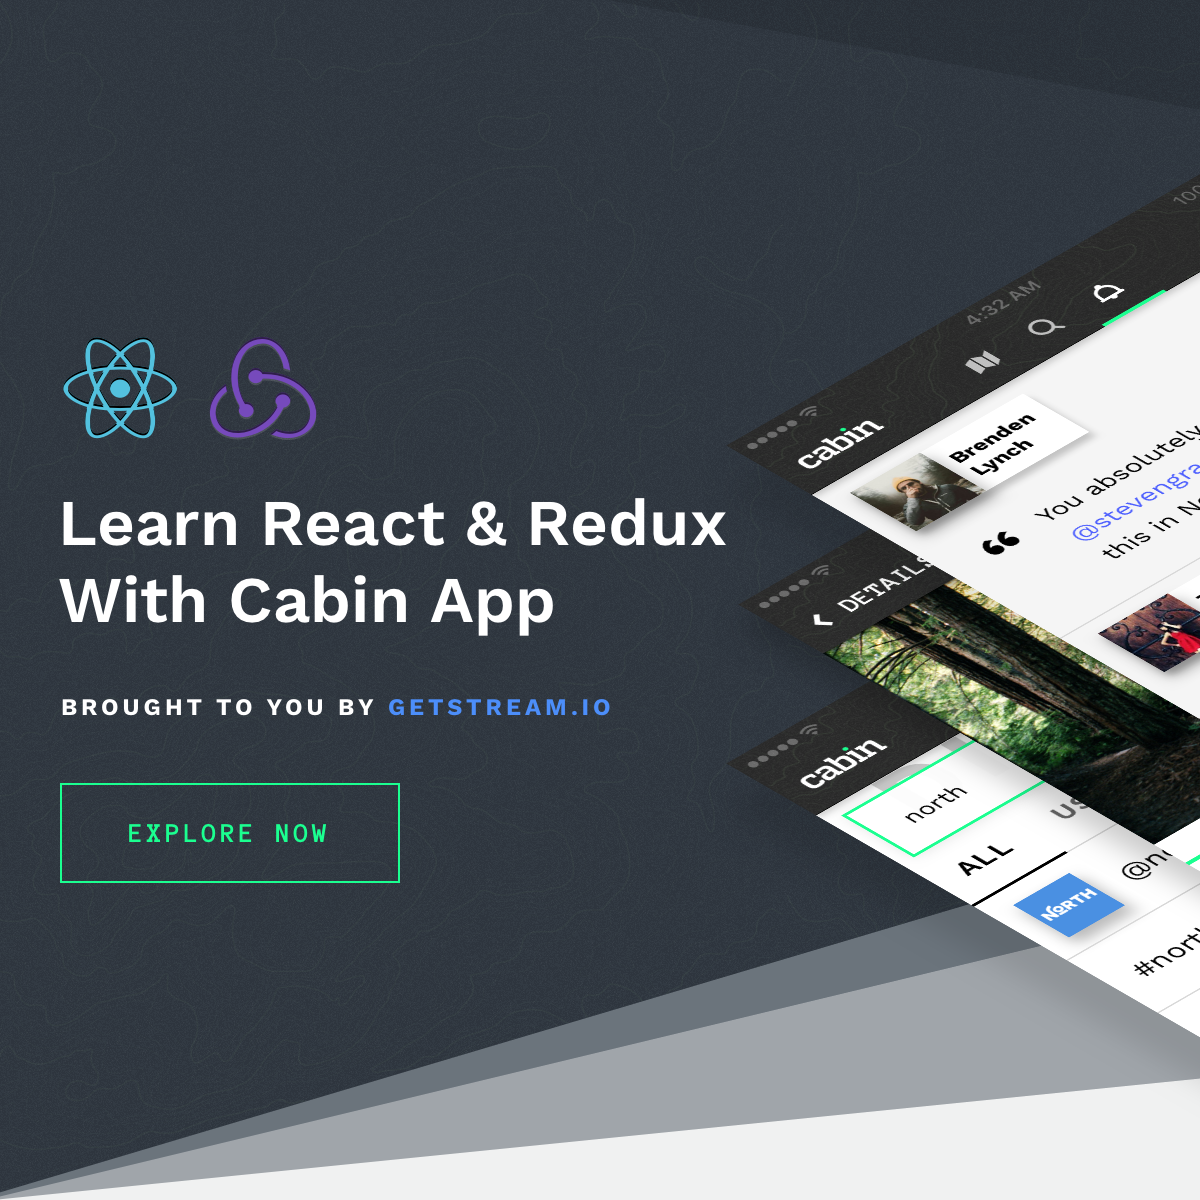 Cabin - A React/Redux Tutorial Series by GetStream.io